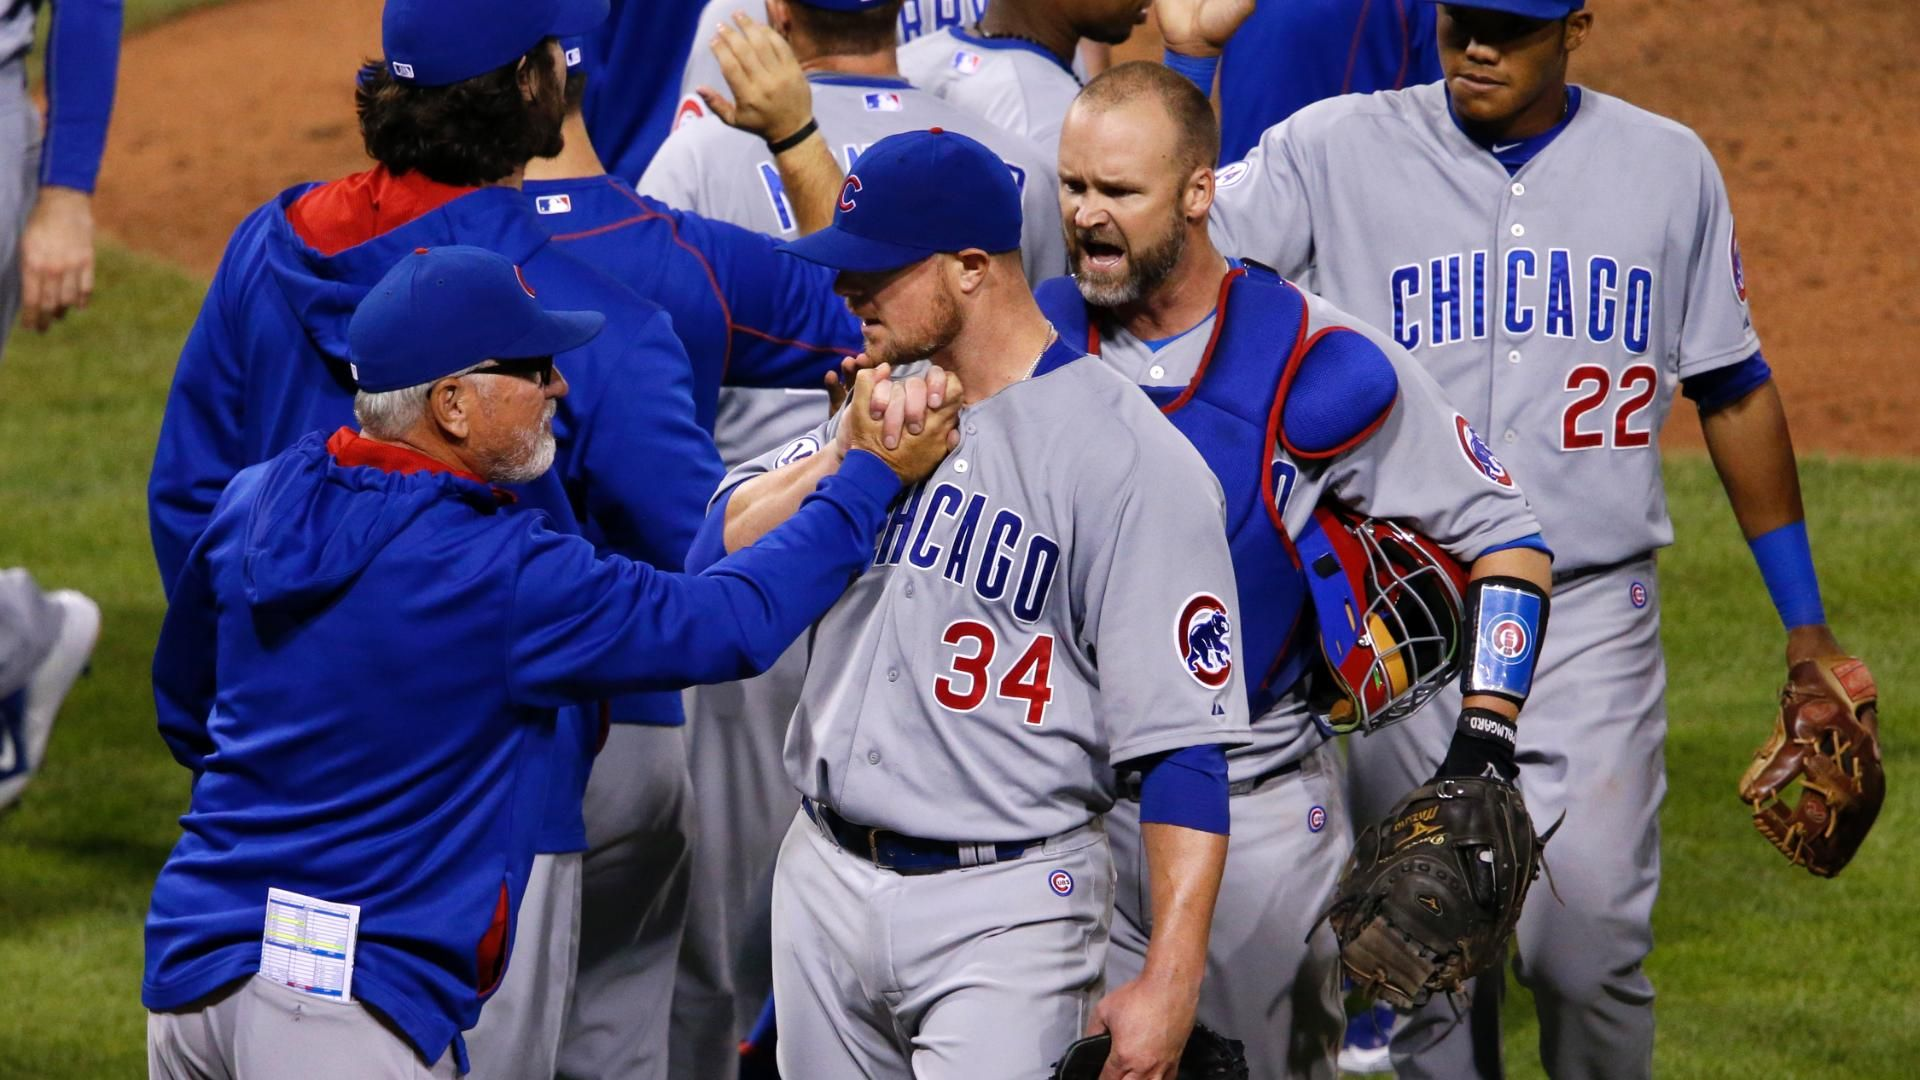 https://secure.espncdn.com/combiner/i?img=/media/motion/2015/0926/dm_150926_BBTN_Minute_Cubs_Clinch_Playoffs/dm_150926_BBTN_Minute_Cubs_Clinch_Playoffs.jpg